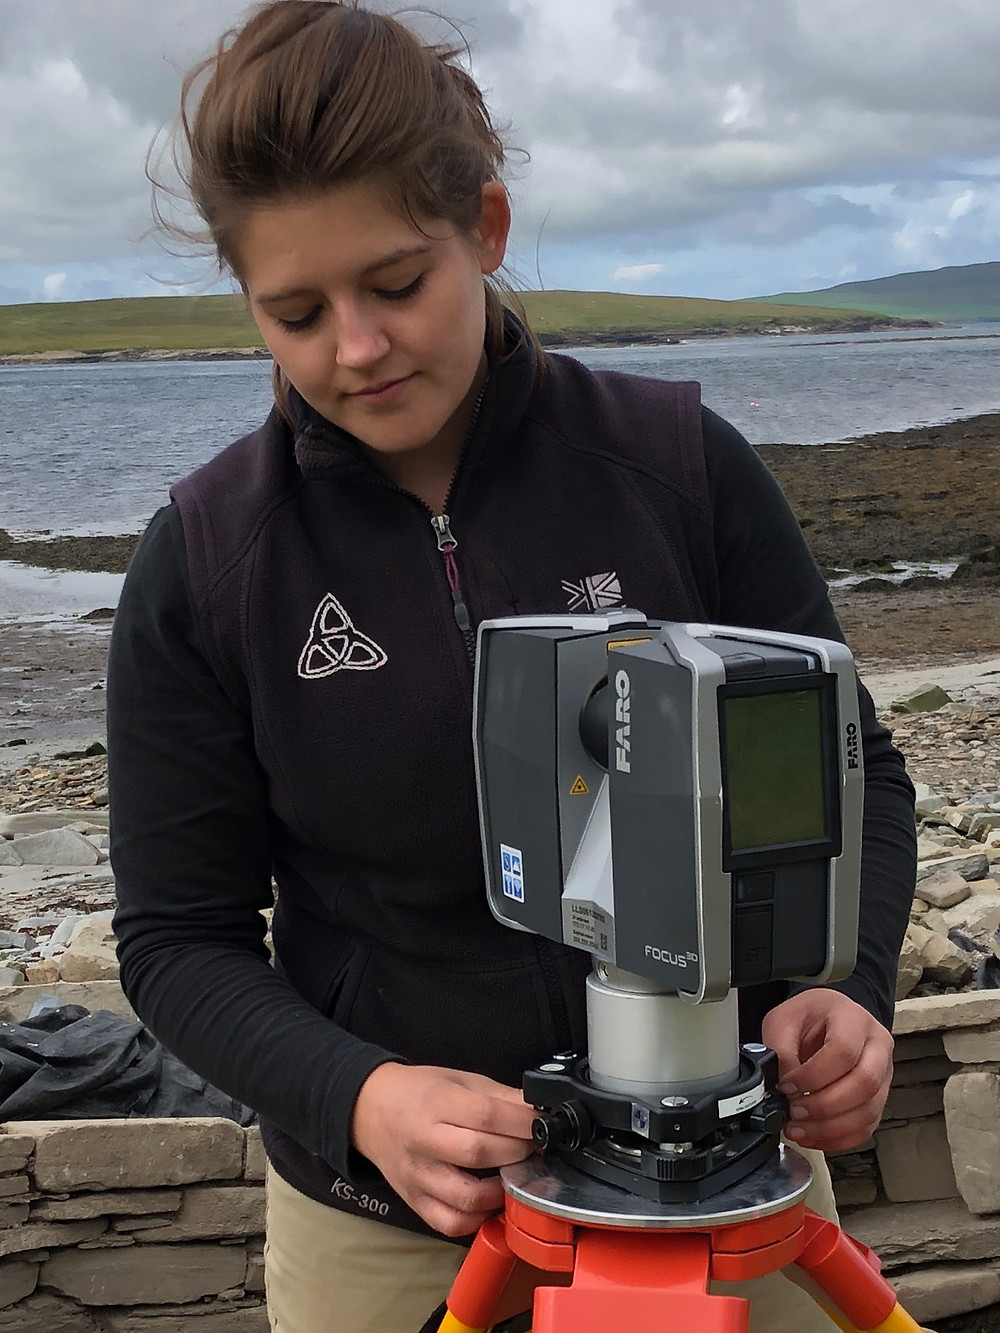 Laser scanning by Bonnie at Swandro